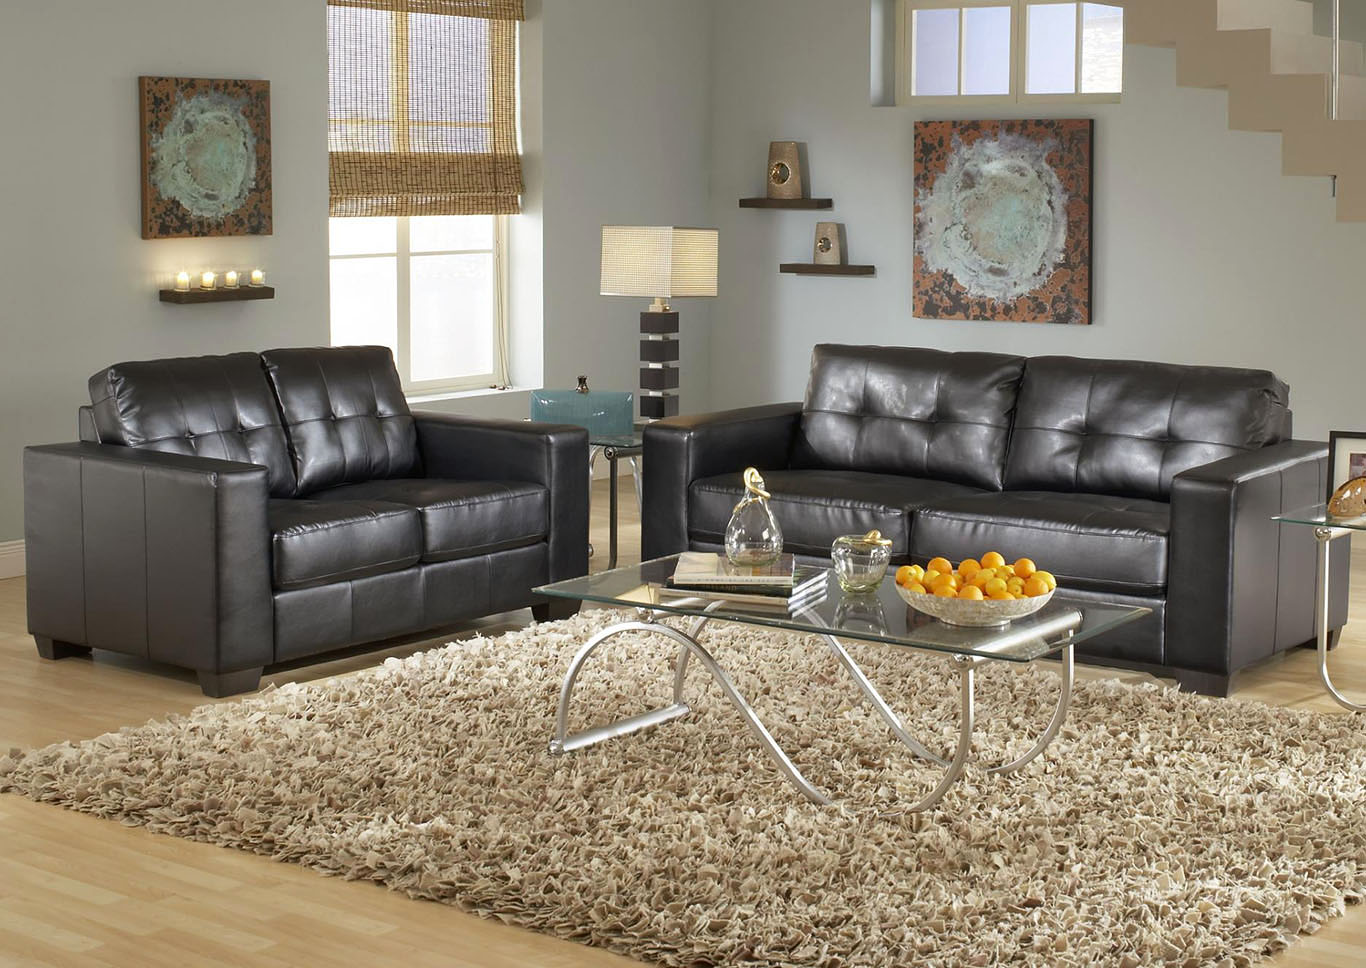 Brown Contemporary Leather Sofa & Loveseat,Global Trading